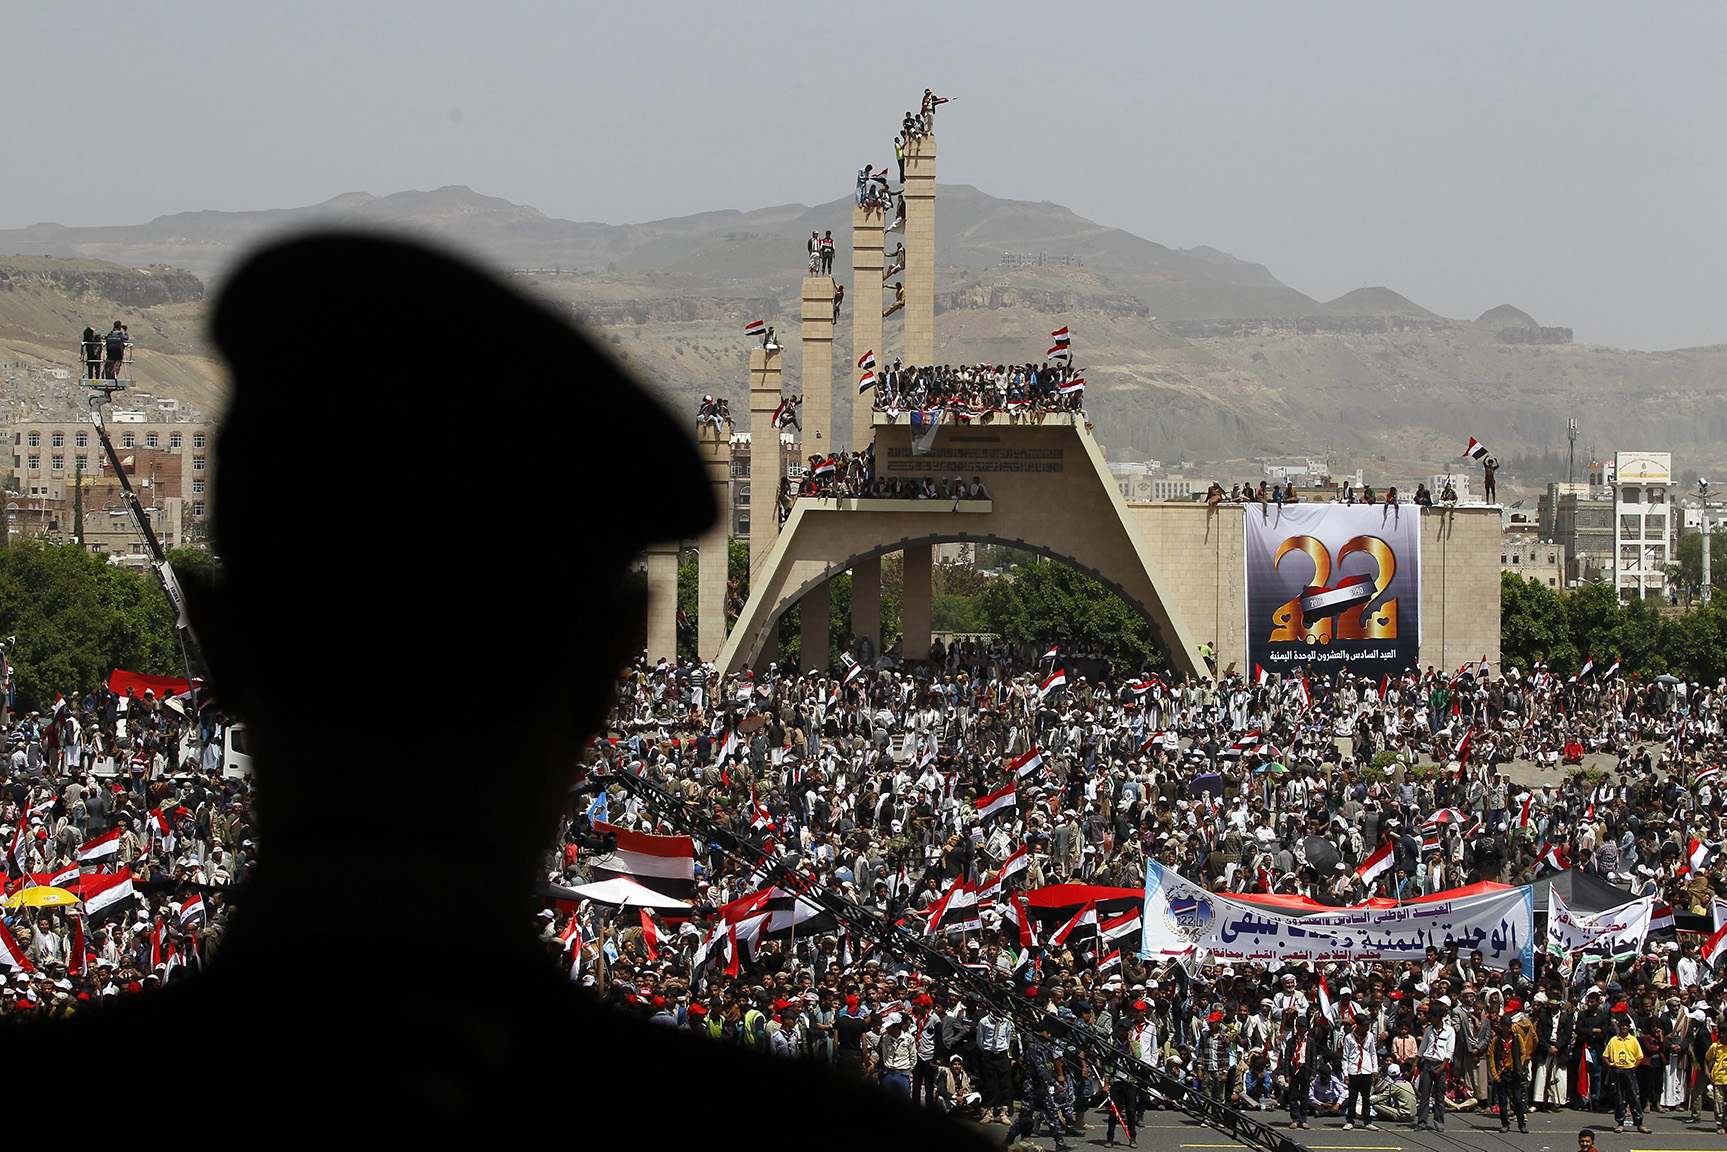 The 26th anniversary of Yemen Reunification Day